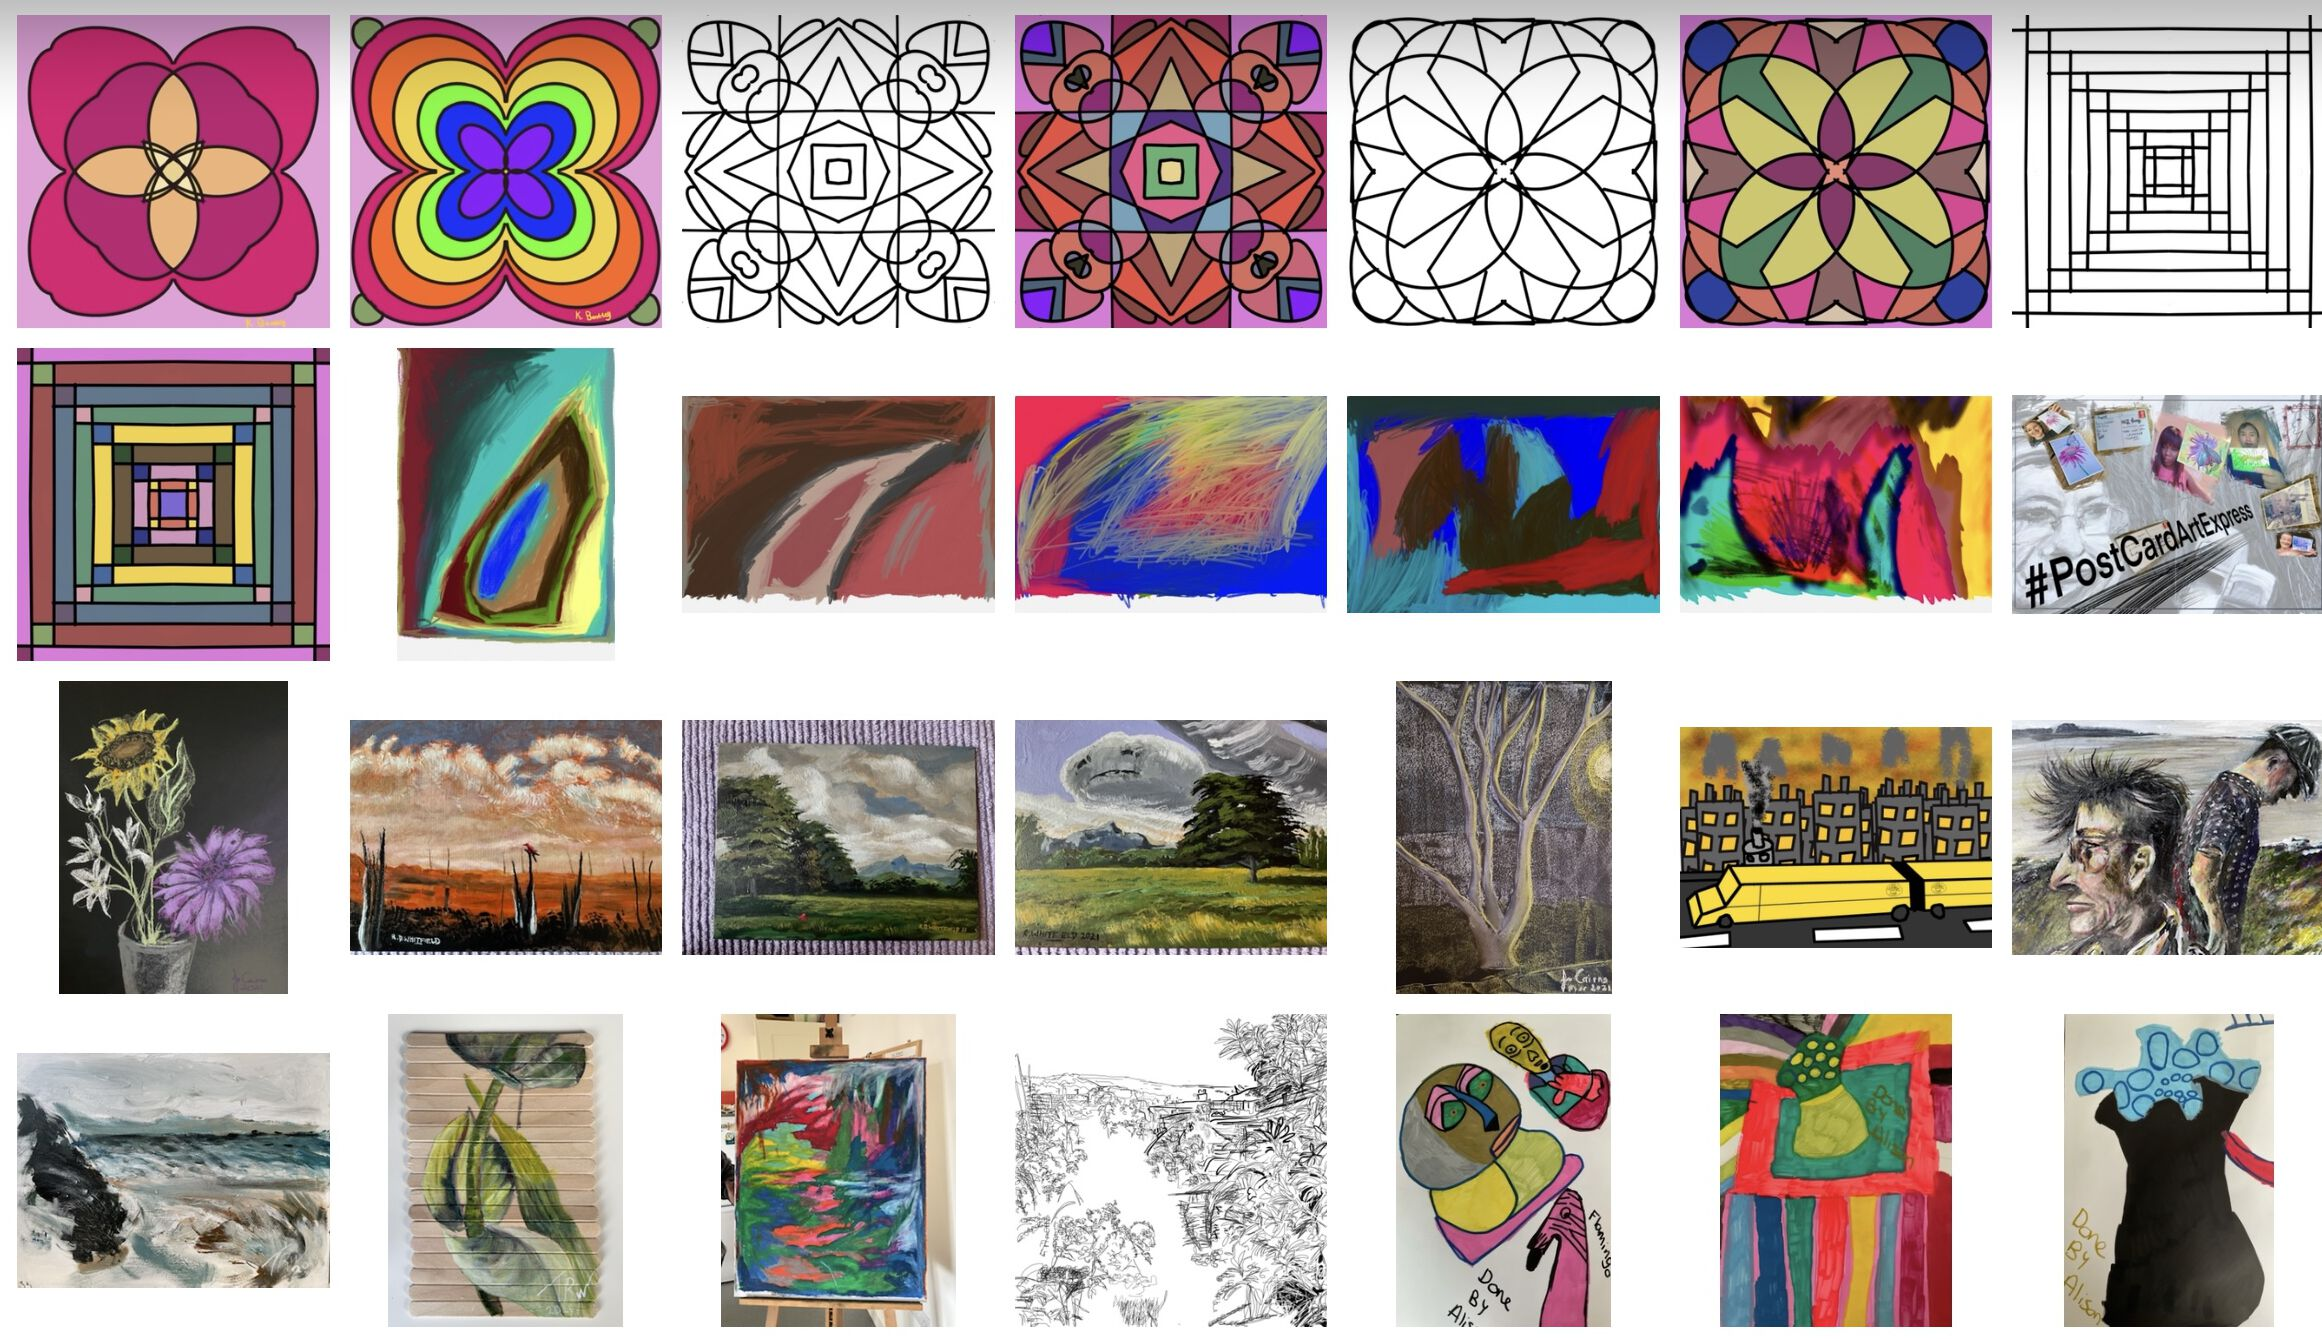 A screenshot of a shared album online which contains images of the artists' work and inspiration.